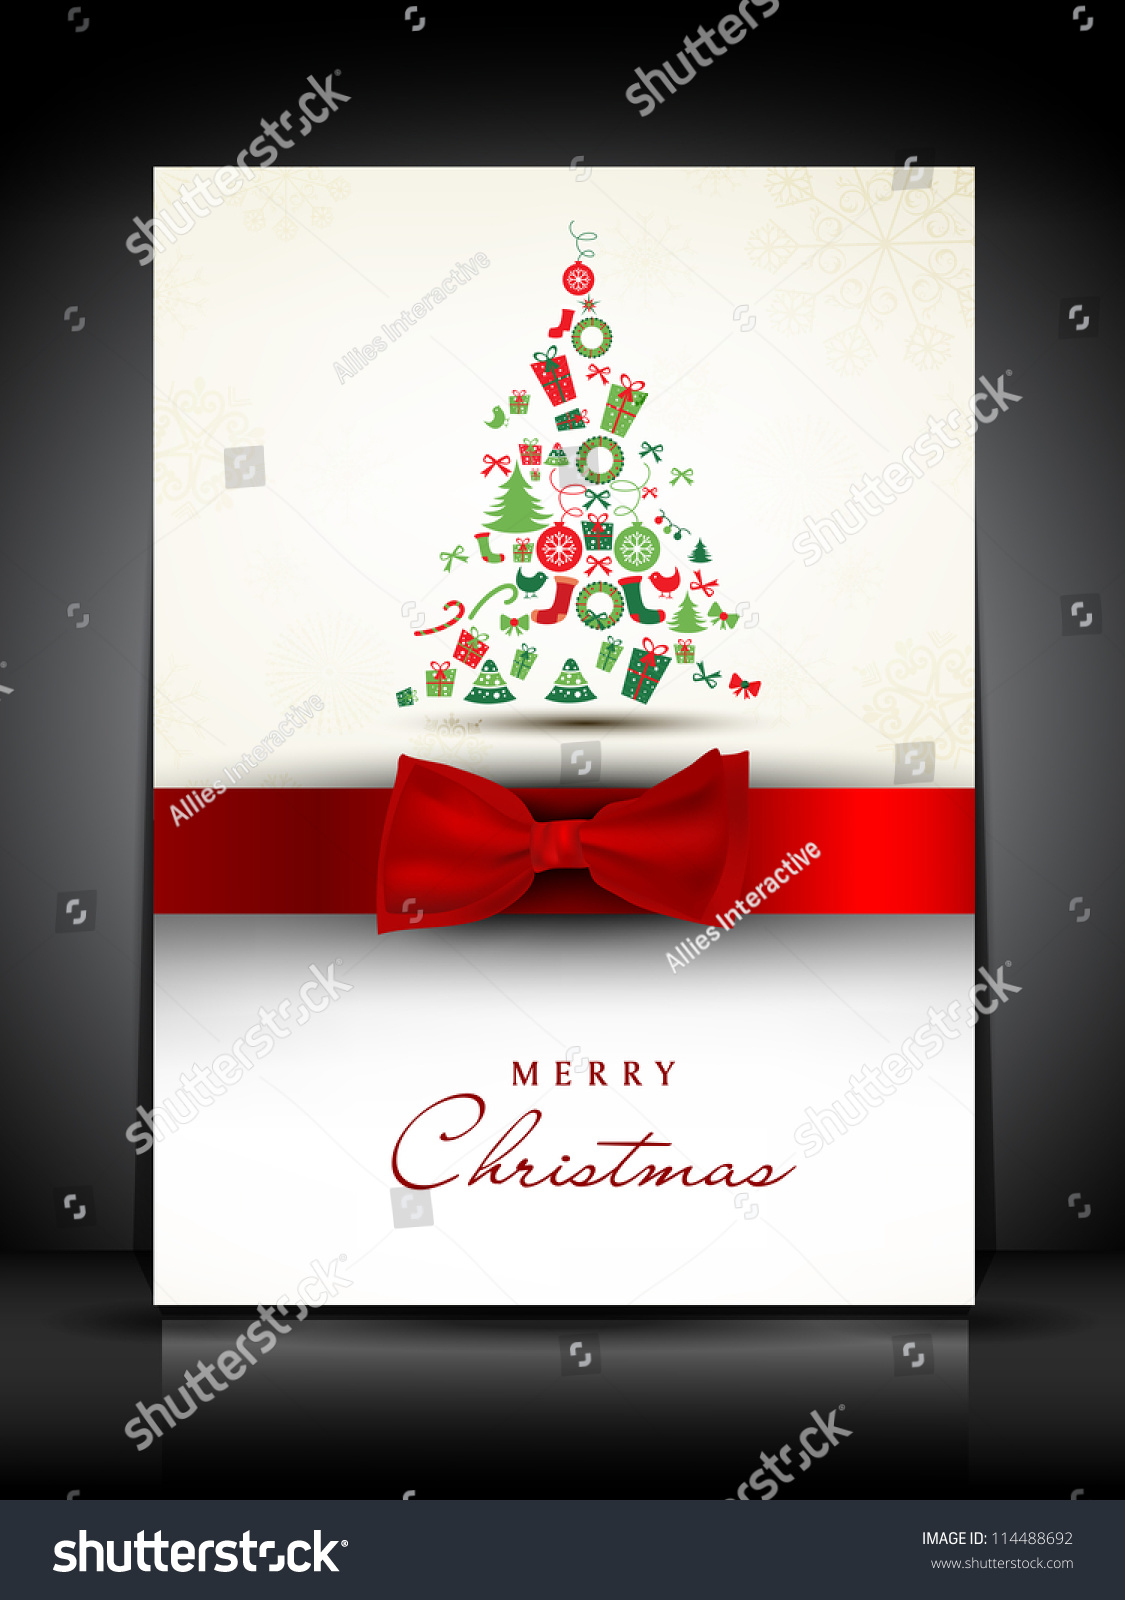 Merry christmas greeting card gift card stock vector 114488692 merry christmas greeting card or gift card decorated with xmas tree and red ribbon eps kristyandbryce Image collections